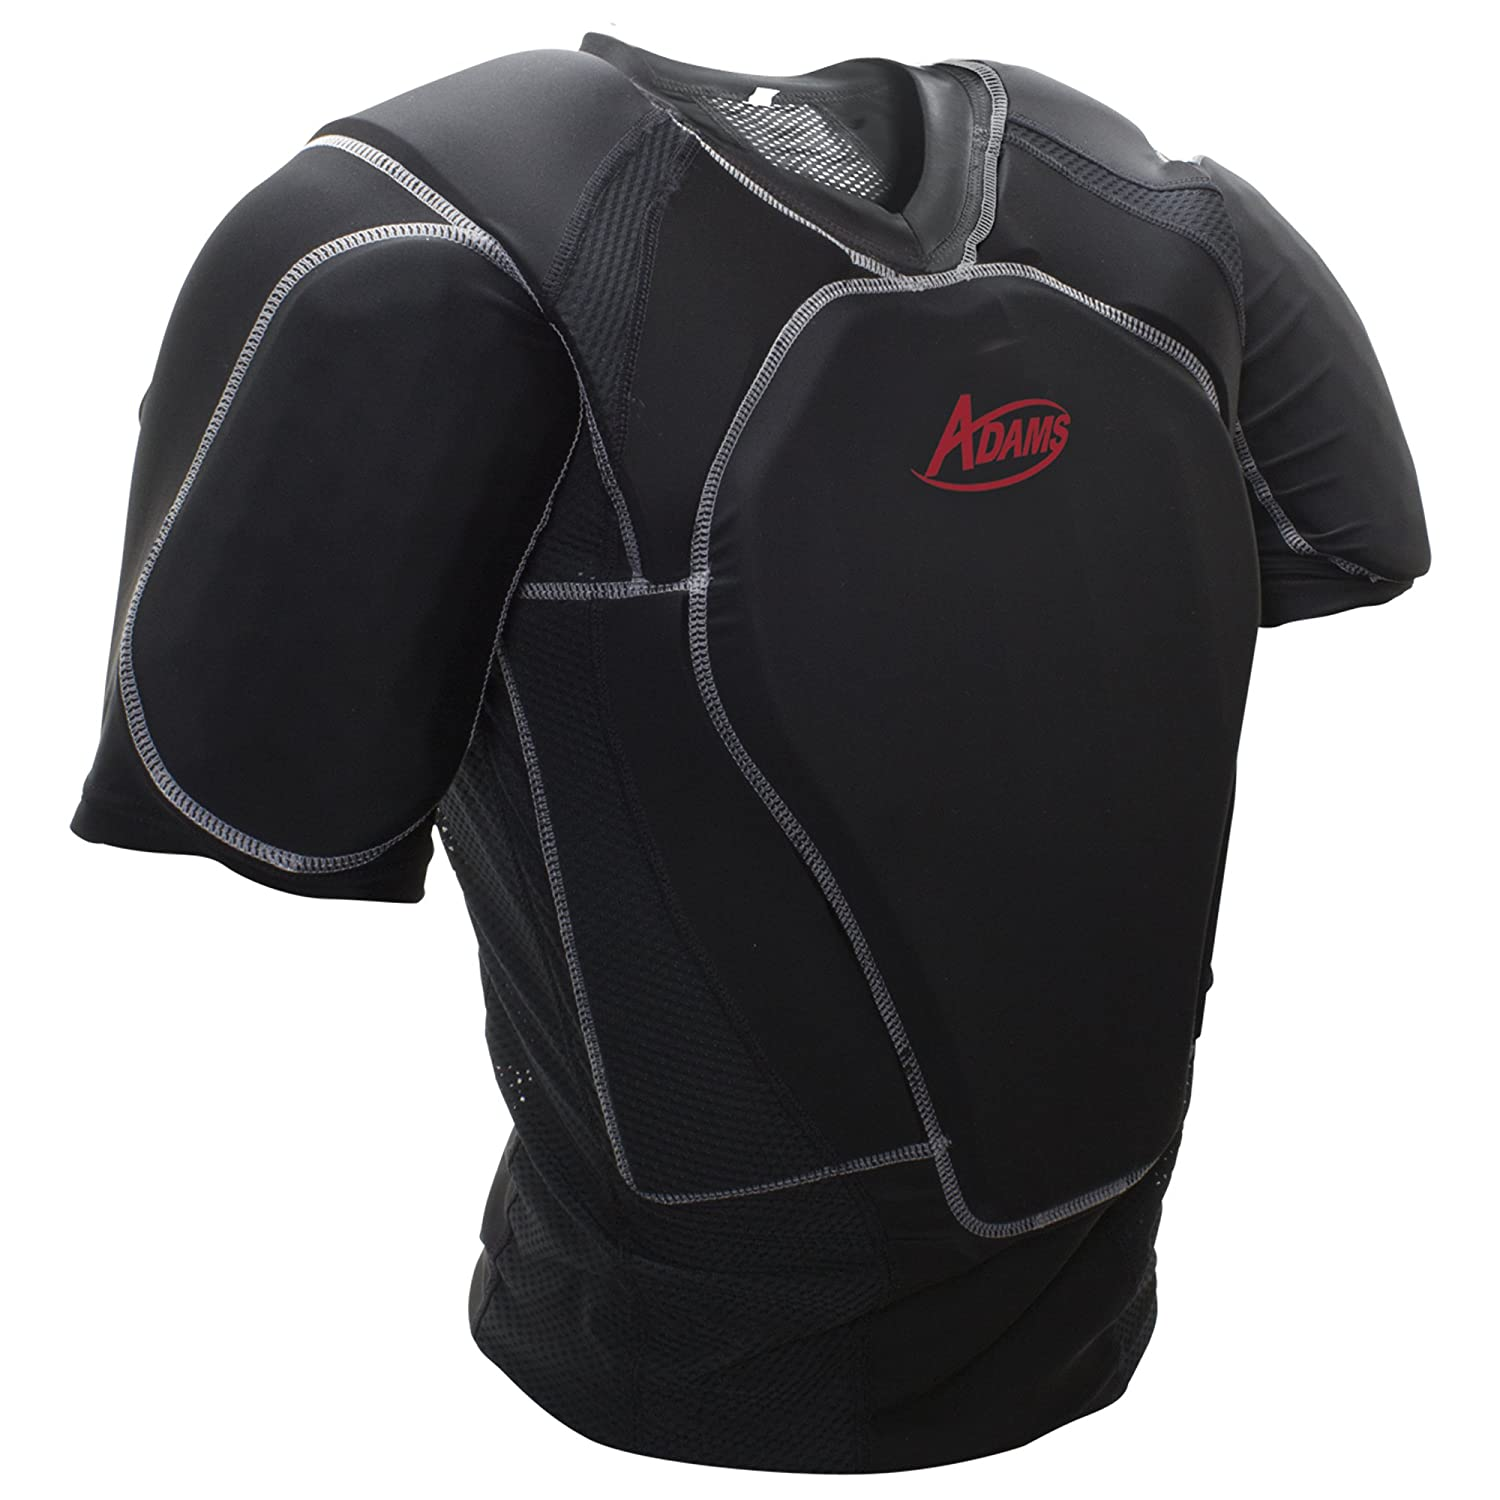 Image of ADAMS USA Umpire Chest Protector Low Profile Shirt Sport